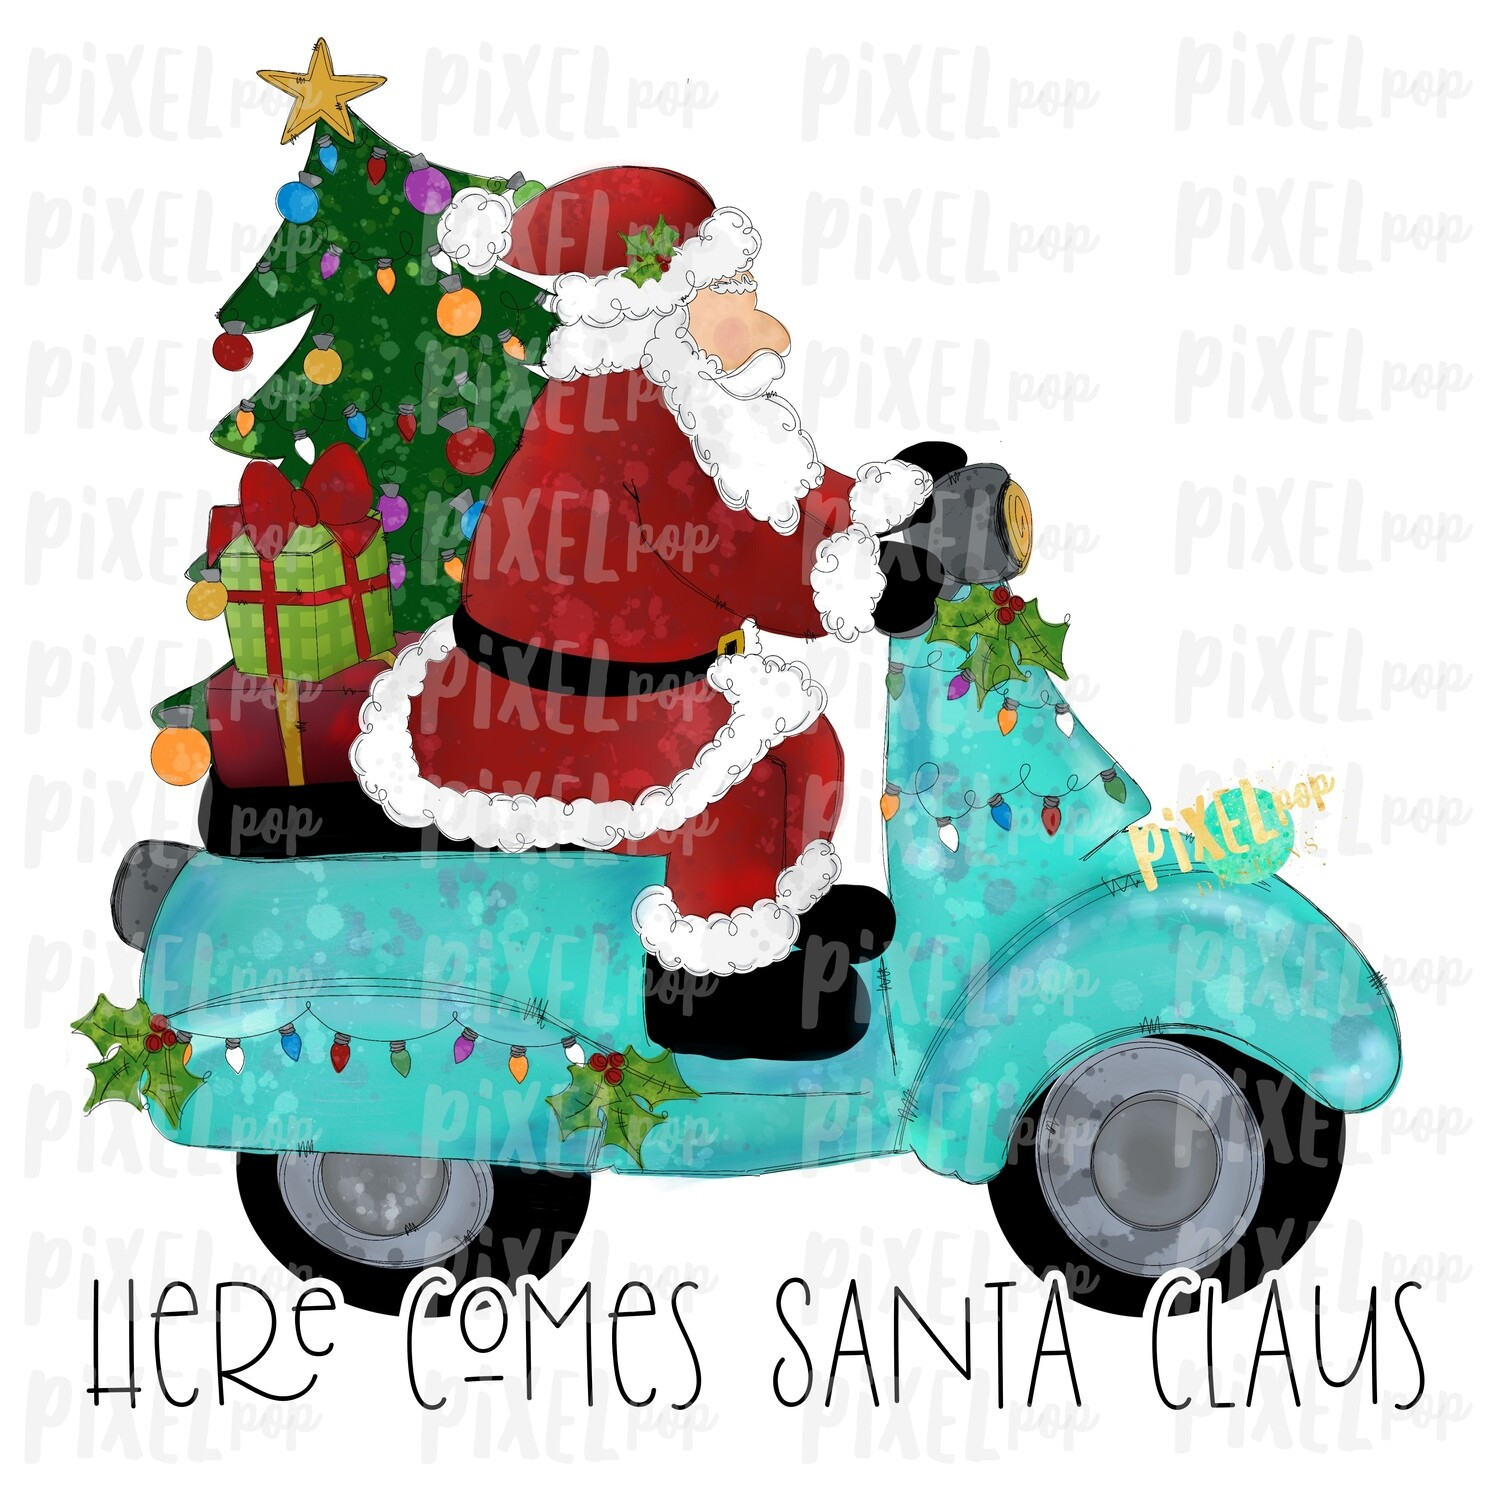 Here Comes Santa Claus Moped Sublimation PNG | Hand Drawn Art Sublimation PNG | Digital Download | Printable Artwork | Art